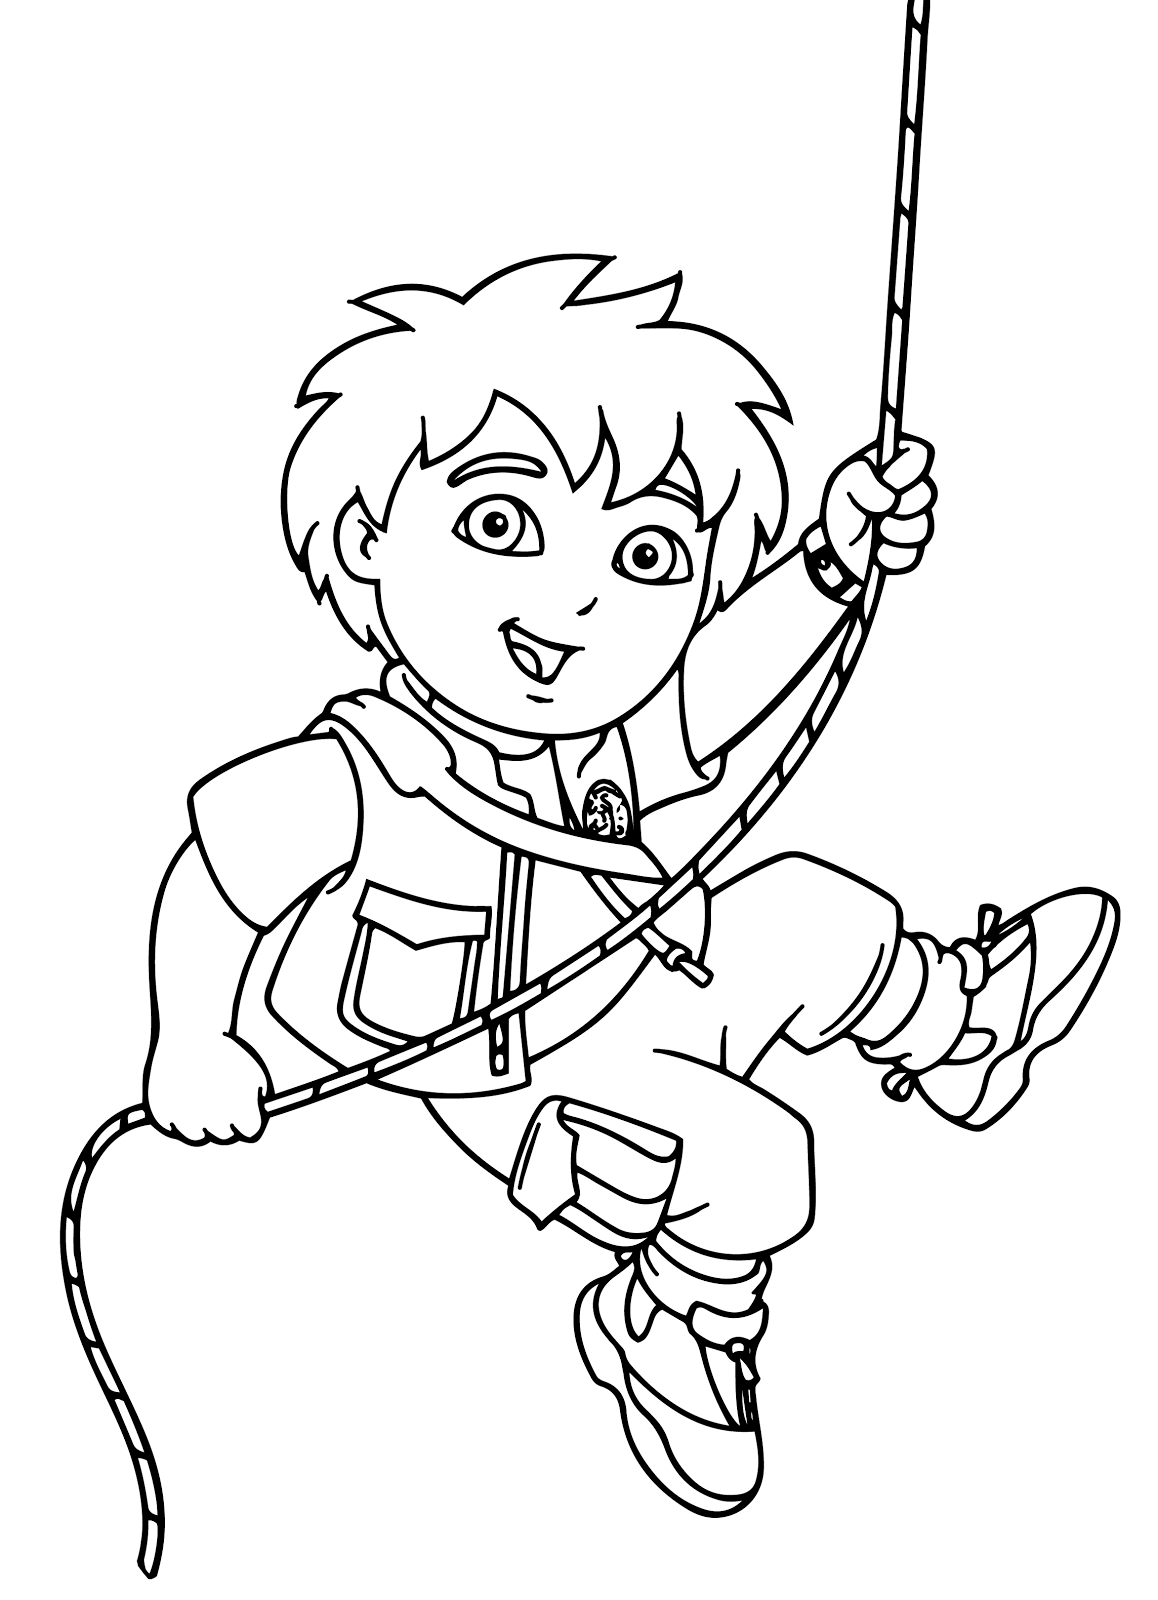 deigo coloring pages - photo#13